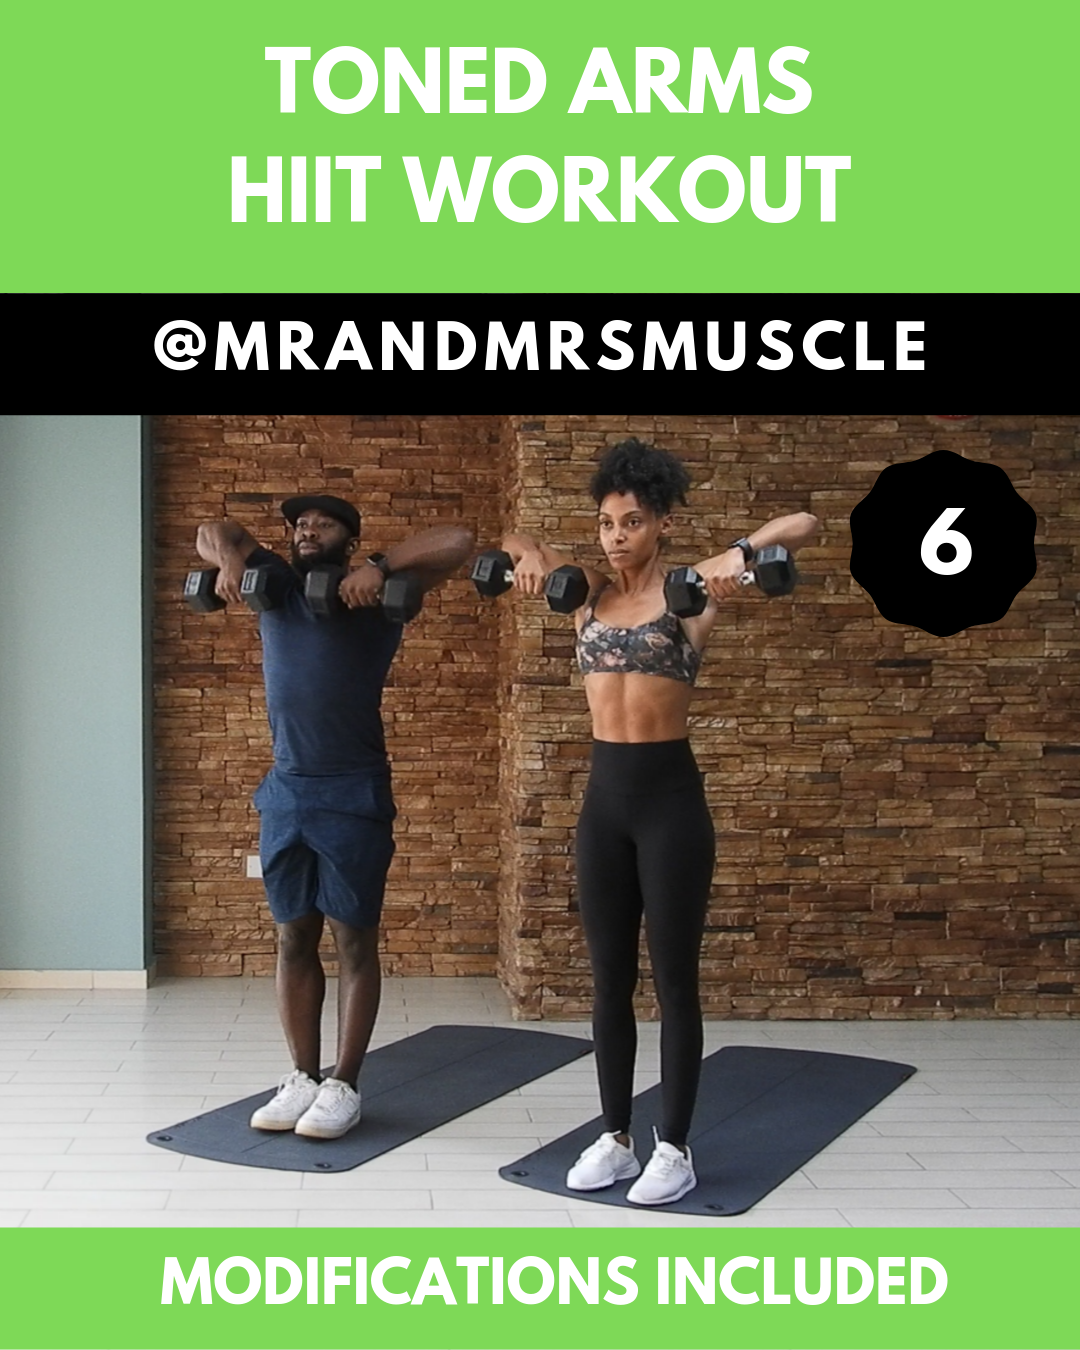 Upper Body Workout - HIIT #exercisesforupperback Get TONED ARMS with our Full Upper Body HIIT Workou...